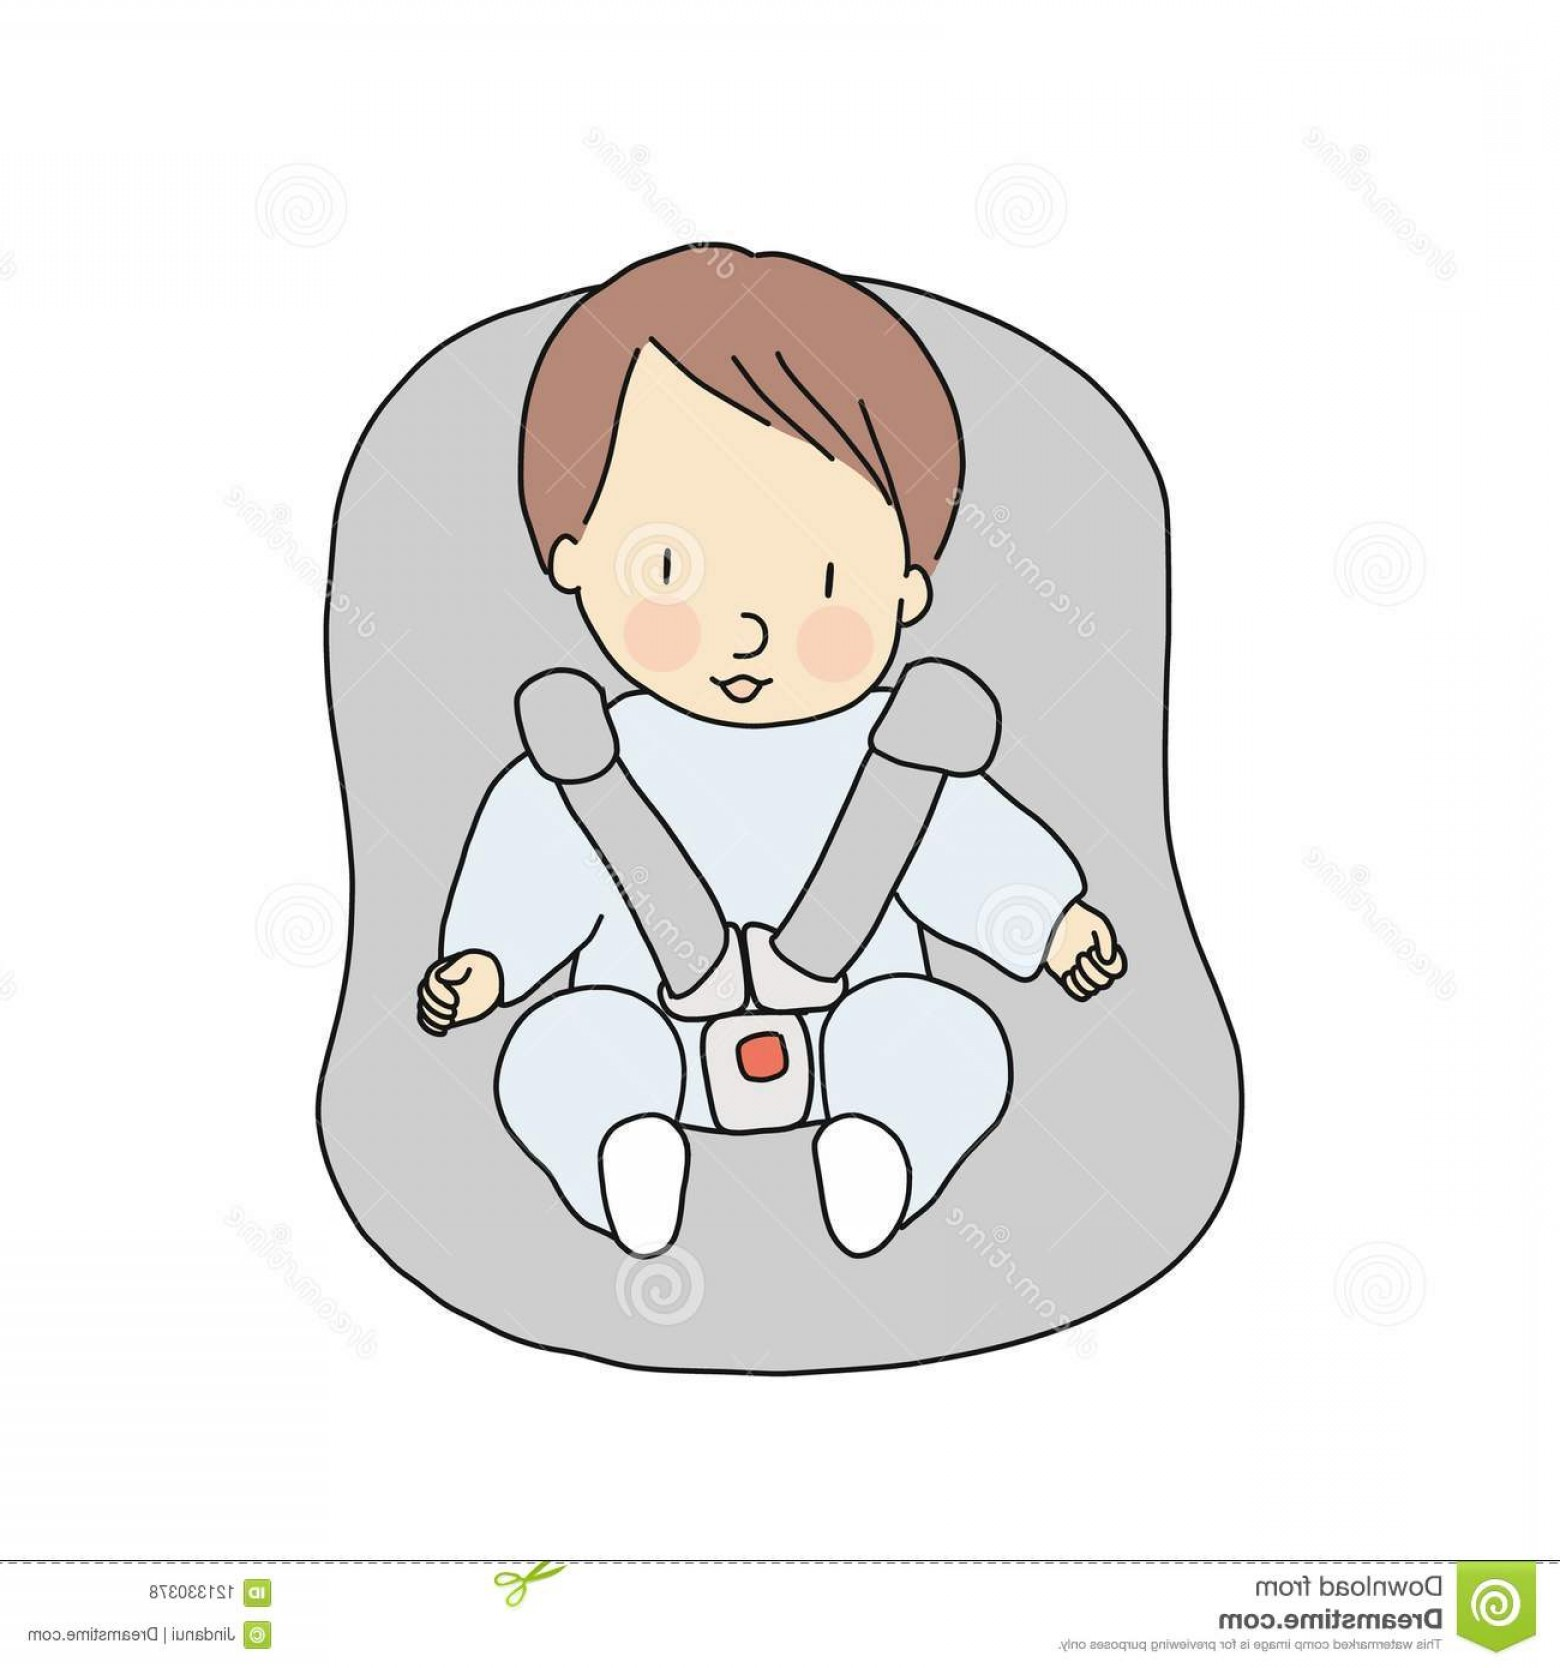 Vector Baby Seat: Vector Illustration Little Infant Sitting Car Seat Baby Safety Concept Cartoon Character Drawing Style Vector Illustration Image